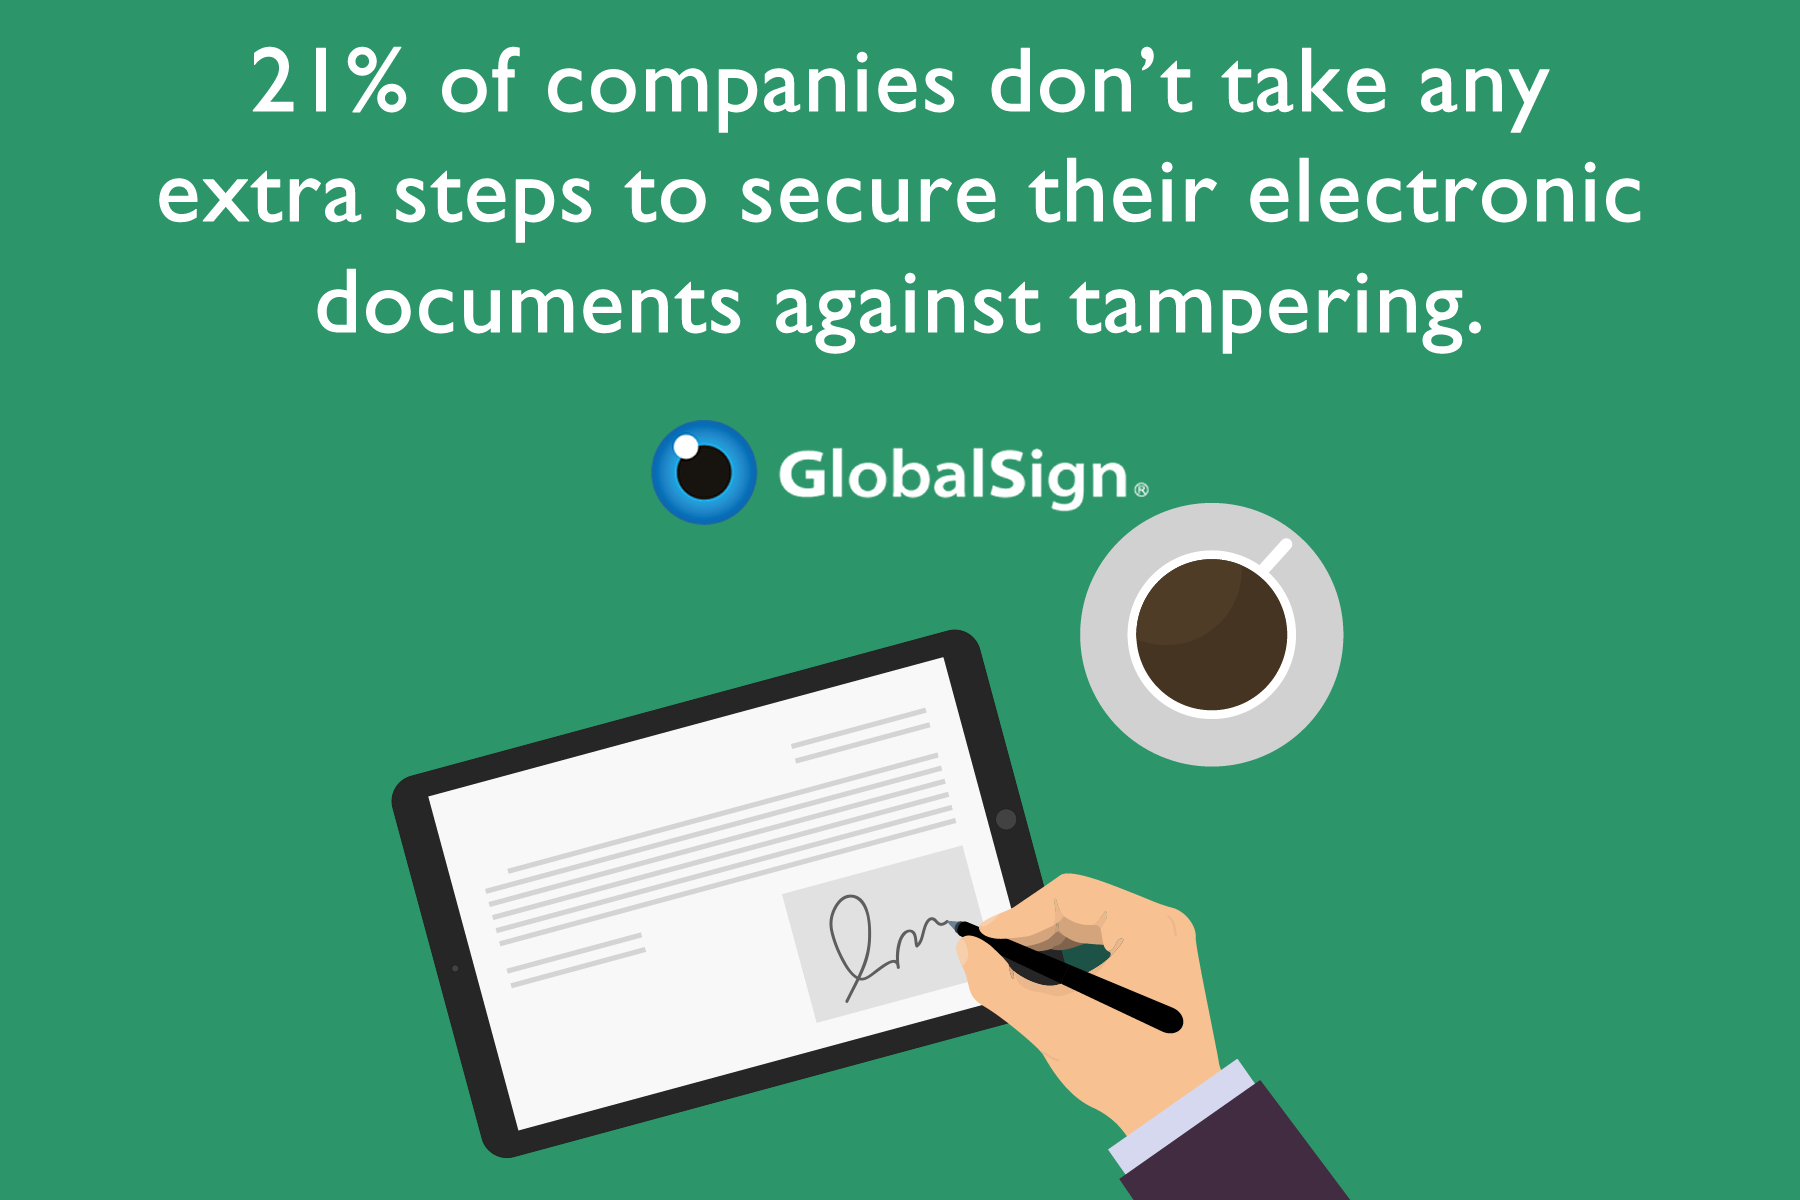 21_of_companies_dont_take_any_extra_steps_to_secure_their_electronic_documents_against_tampering._LN.fw.png